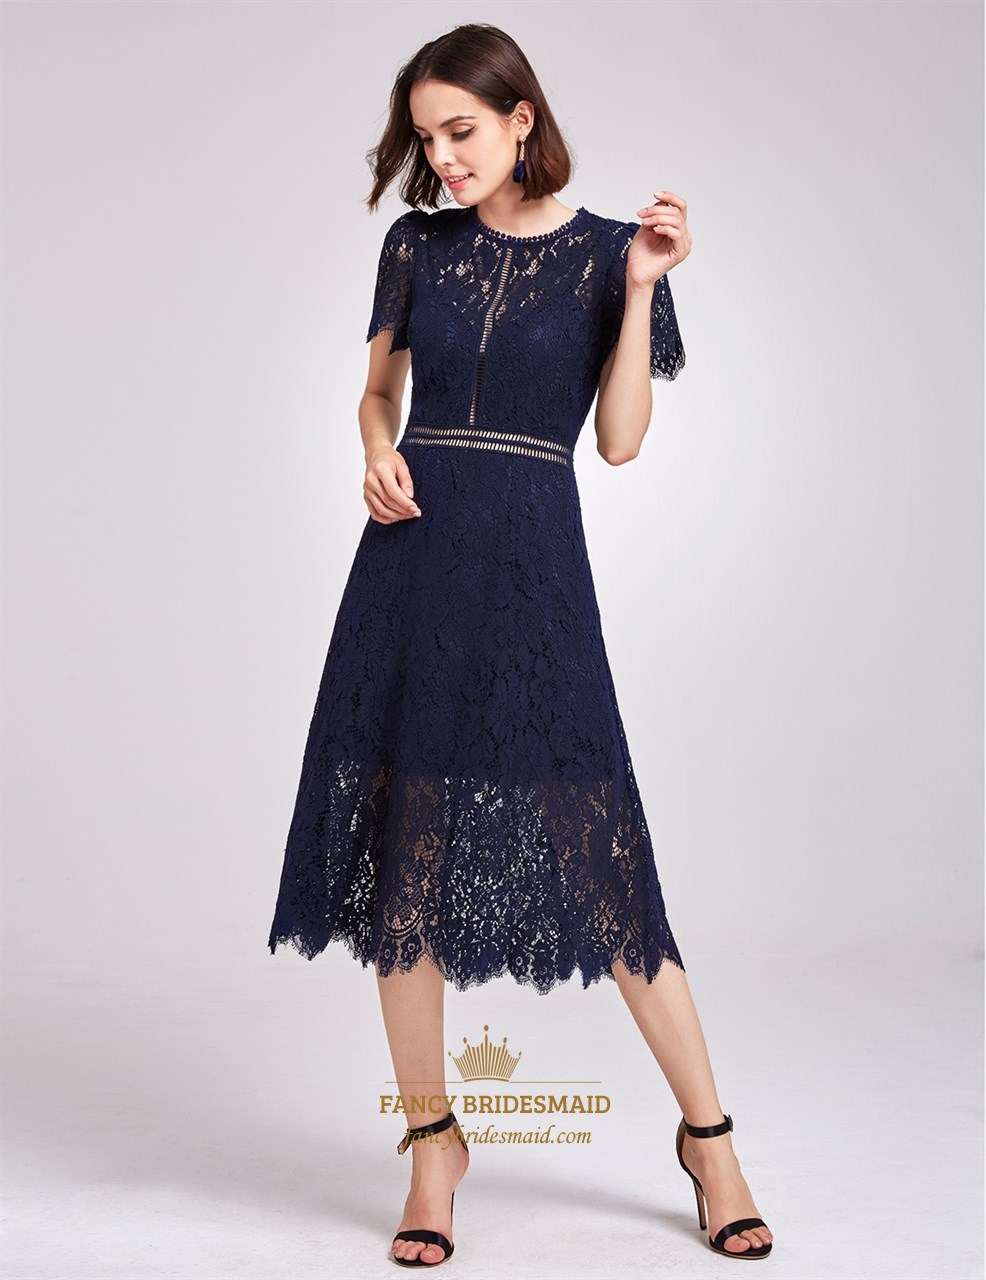 Elegant Navy Blue Short Sleeve A-Line Tea Length Lace Cocktail Dress ...